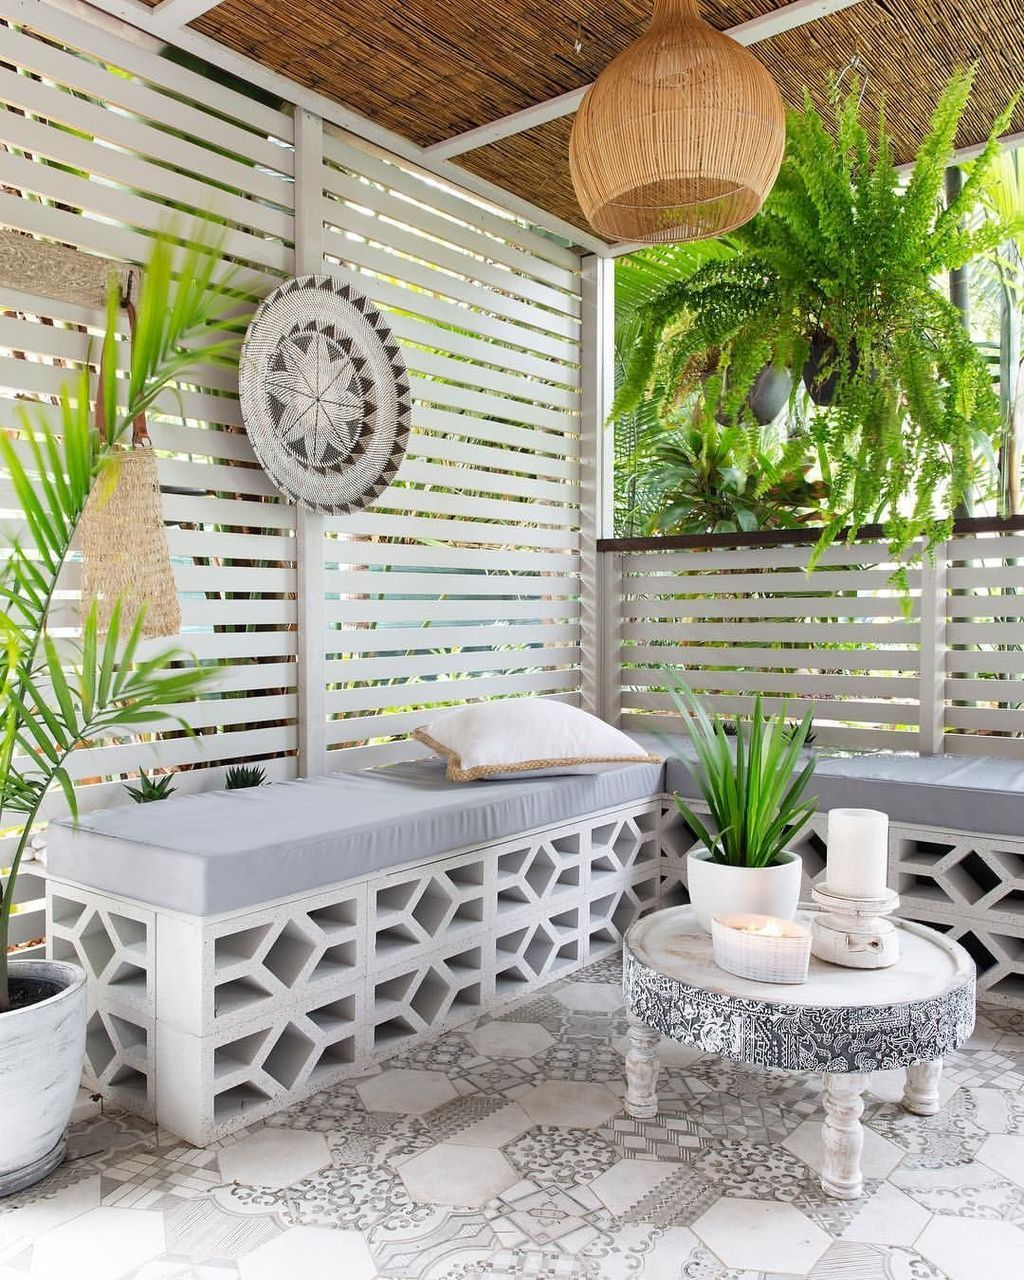 Garden Seating Ideas For Your Outdoor Living Room: 41 Flawless Breeze Blocks Design Ideas For Elegant Home